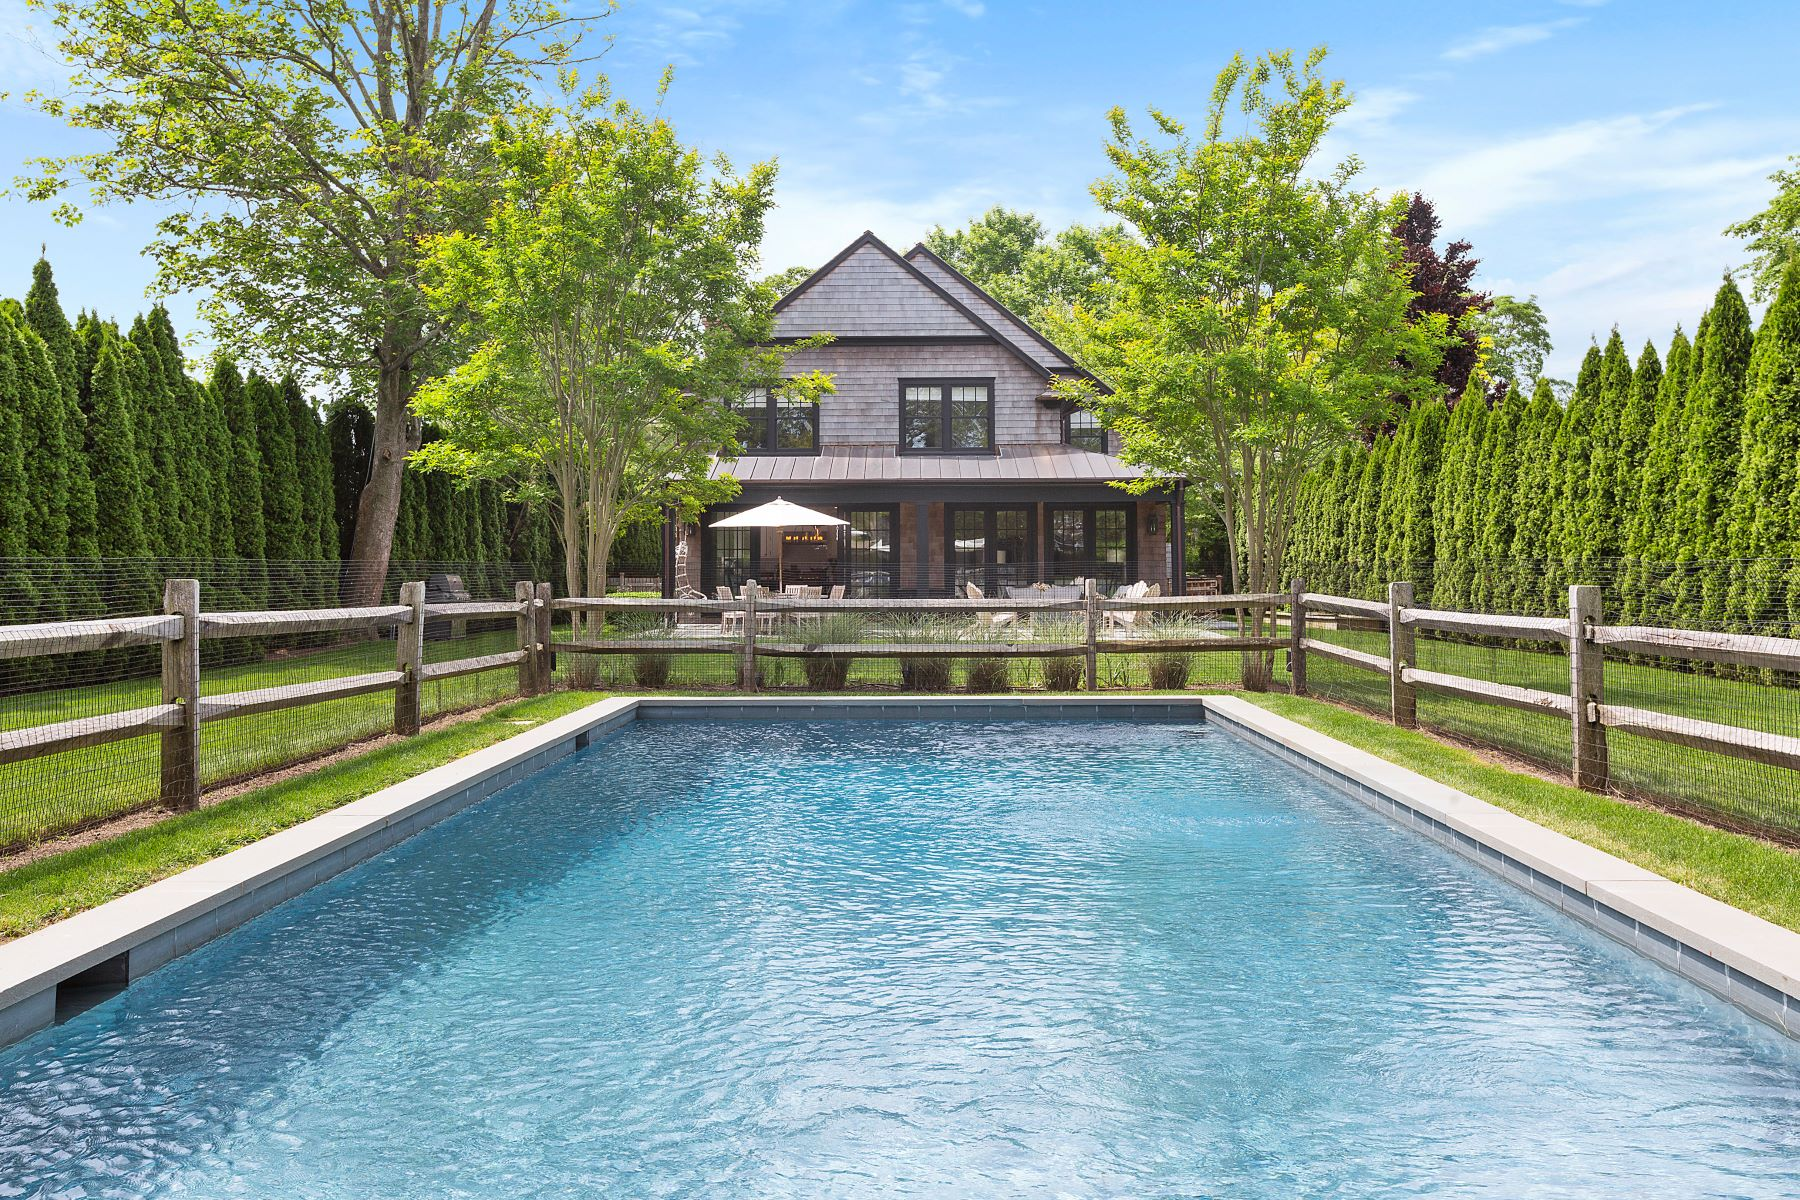 Single Family Homes for Sale at Chic Water Mill Farmhouse 102 Halsey Lane Water Mill, New York 11976 United States